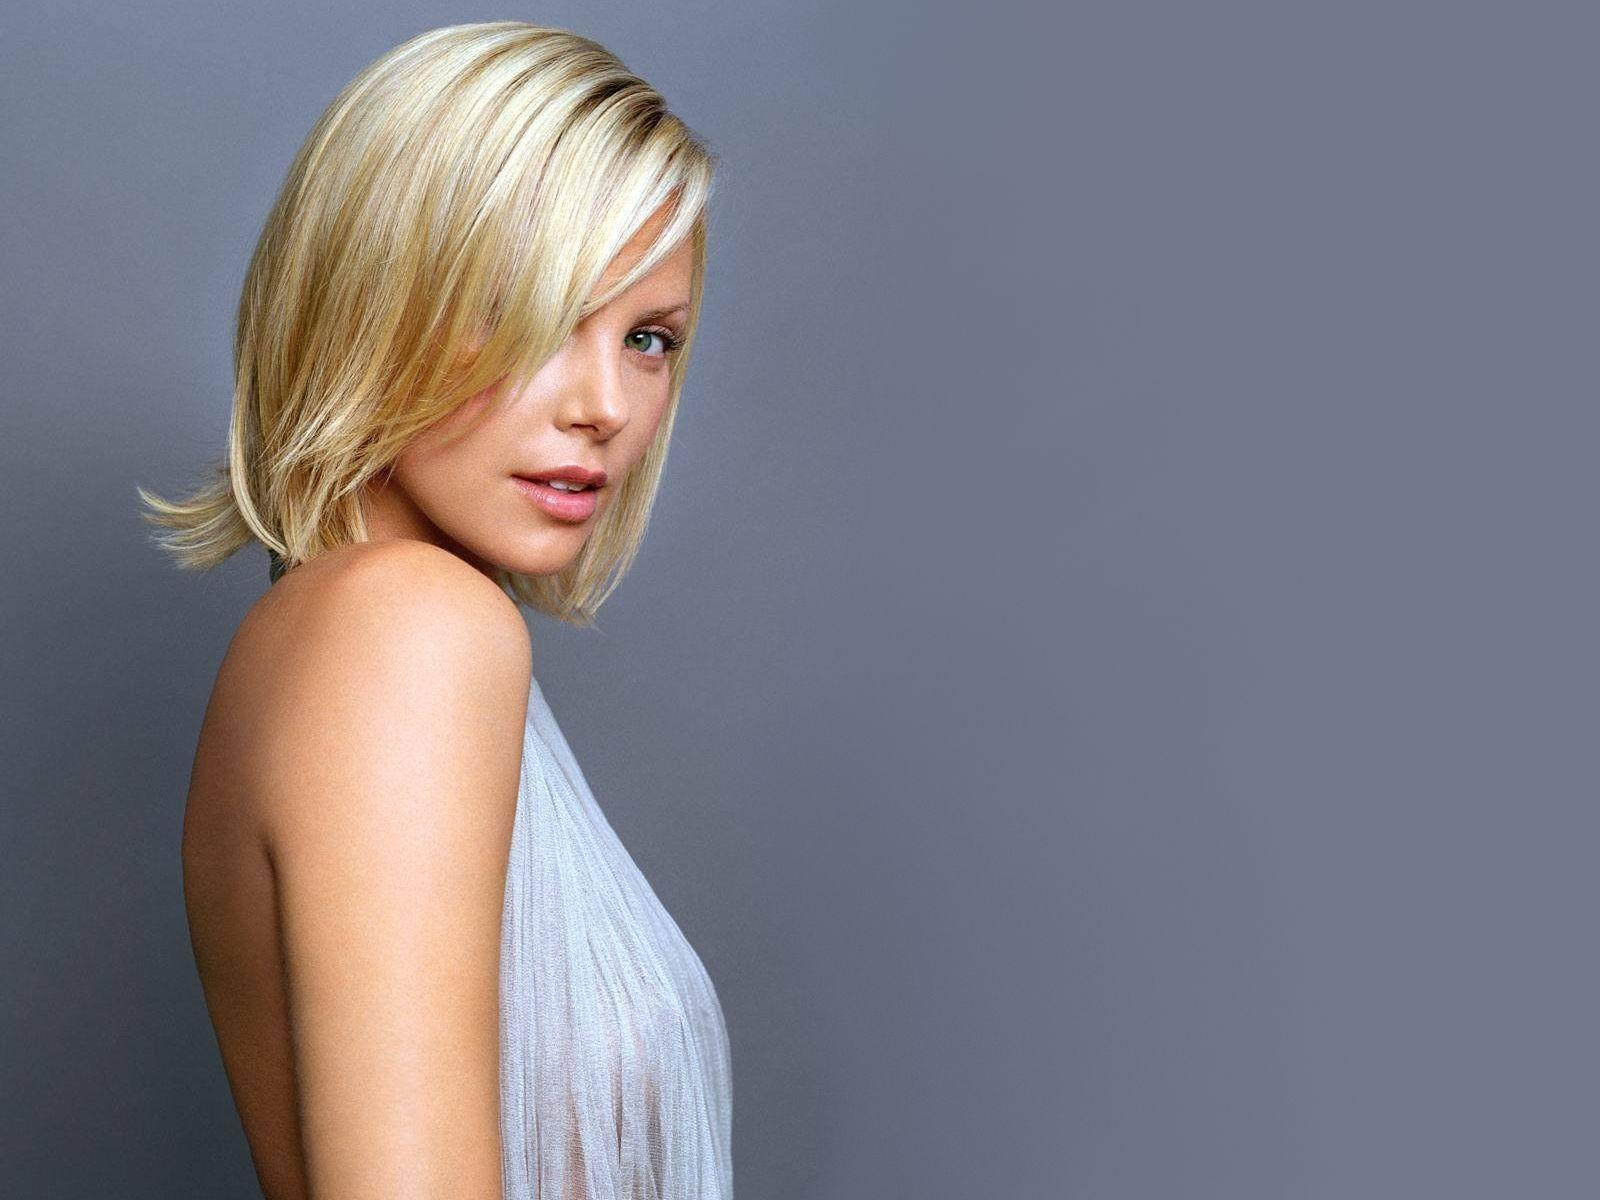 Free Download Beautiful Charlize Theron HD Wallpapers